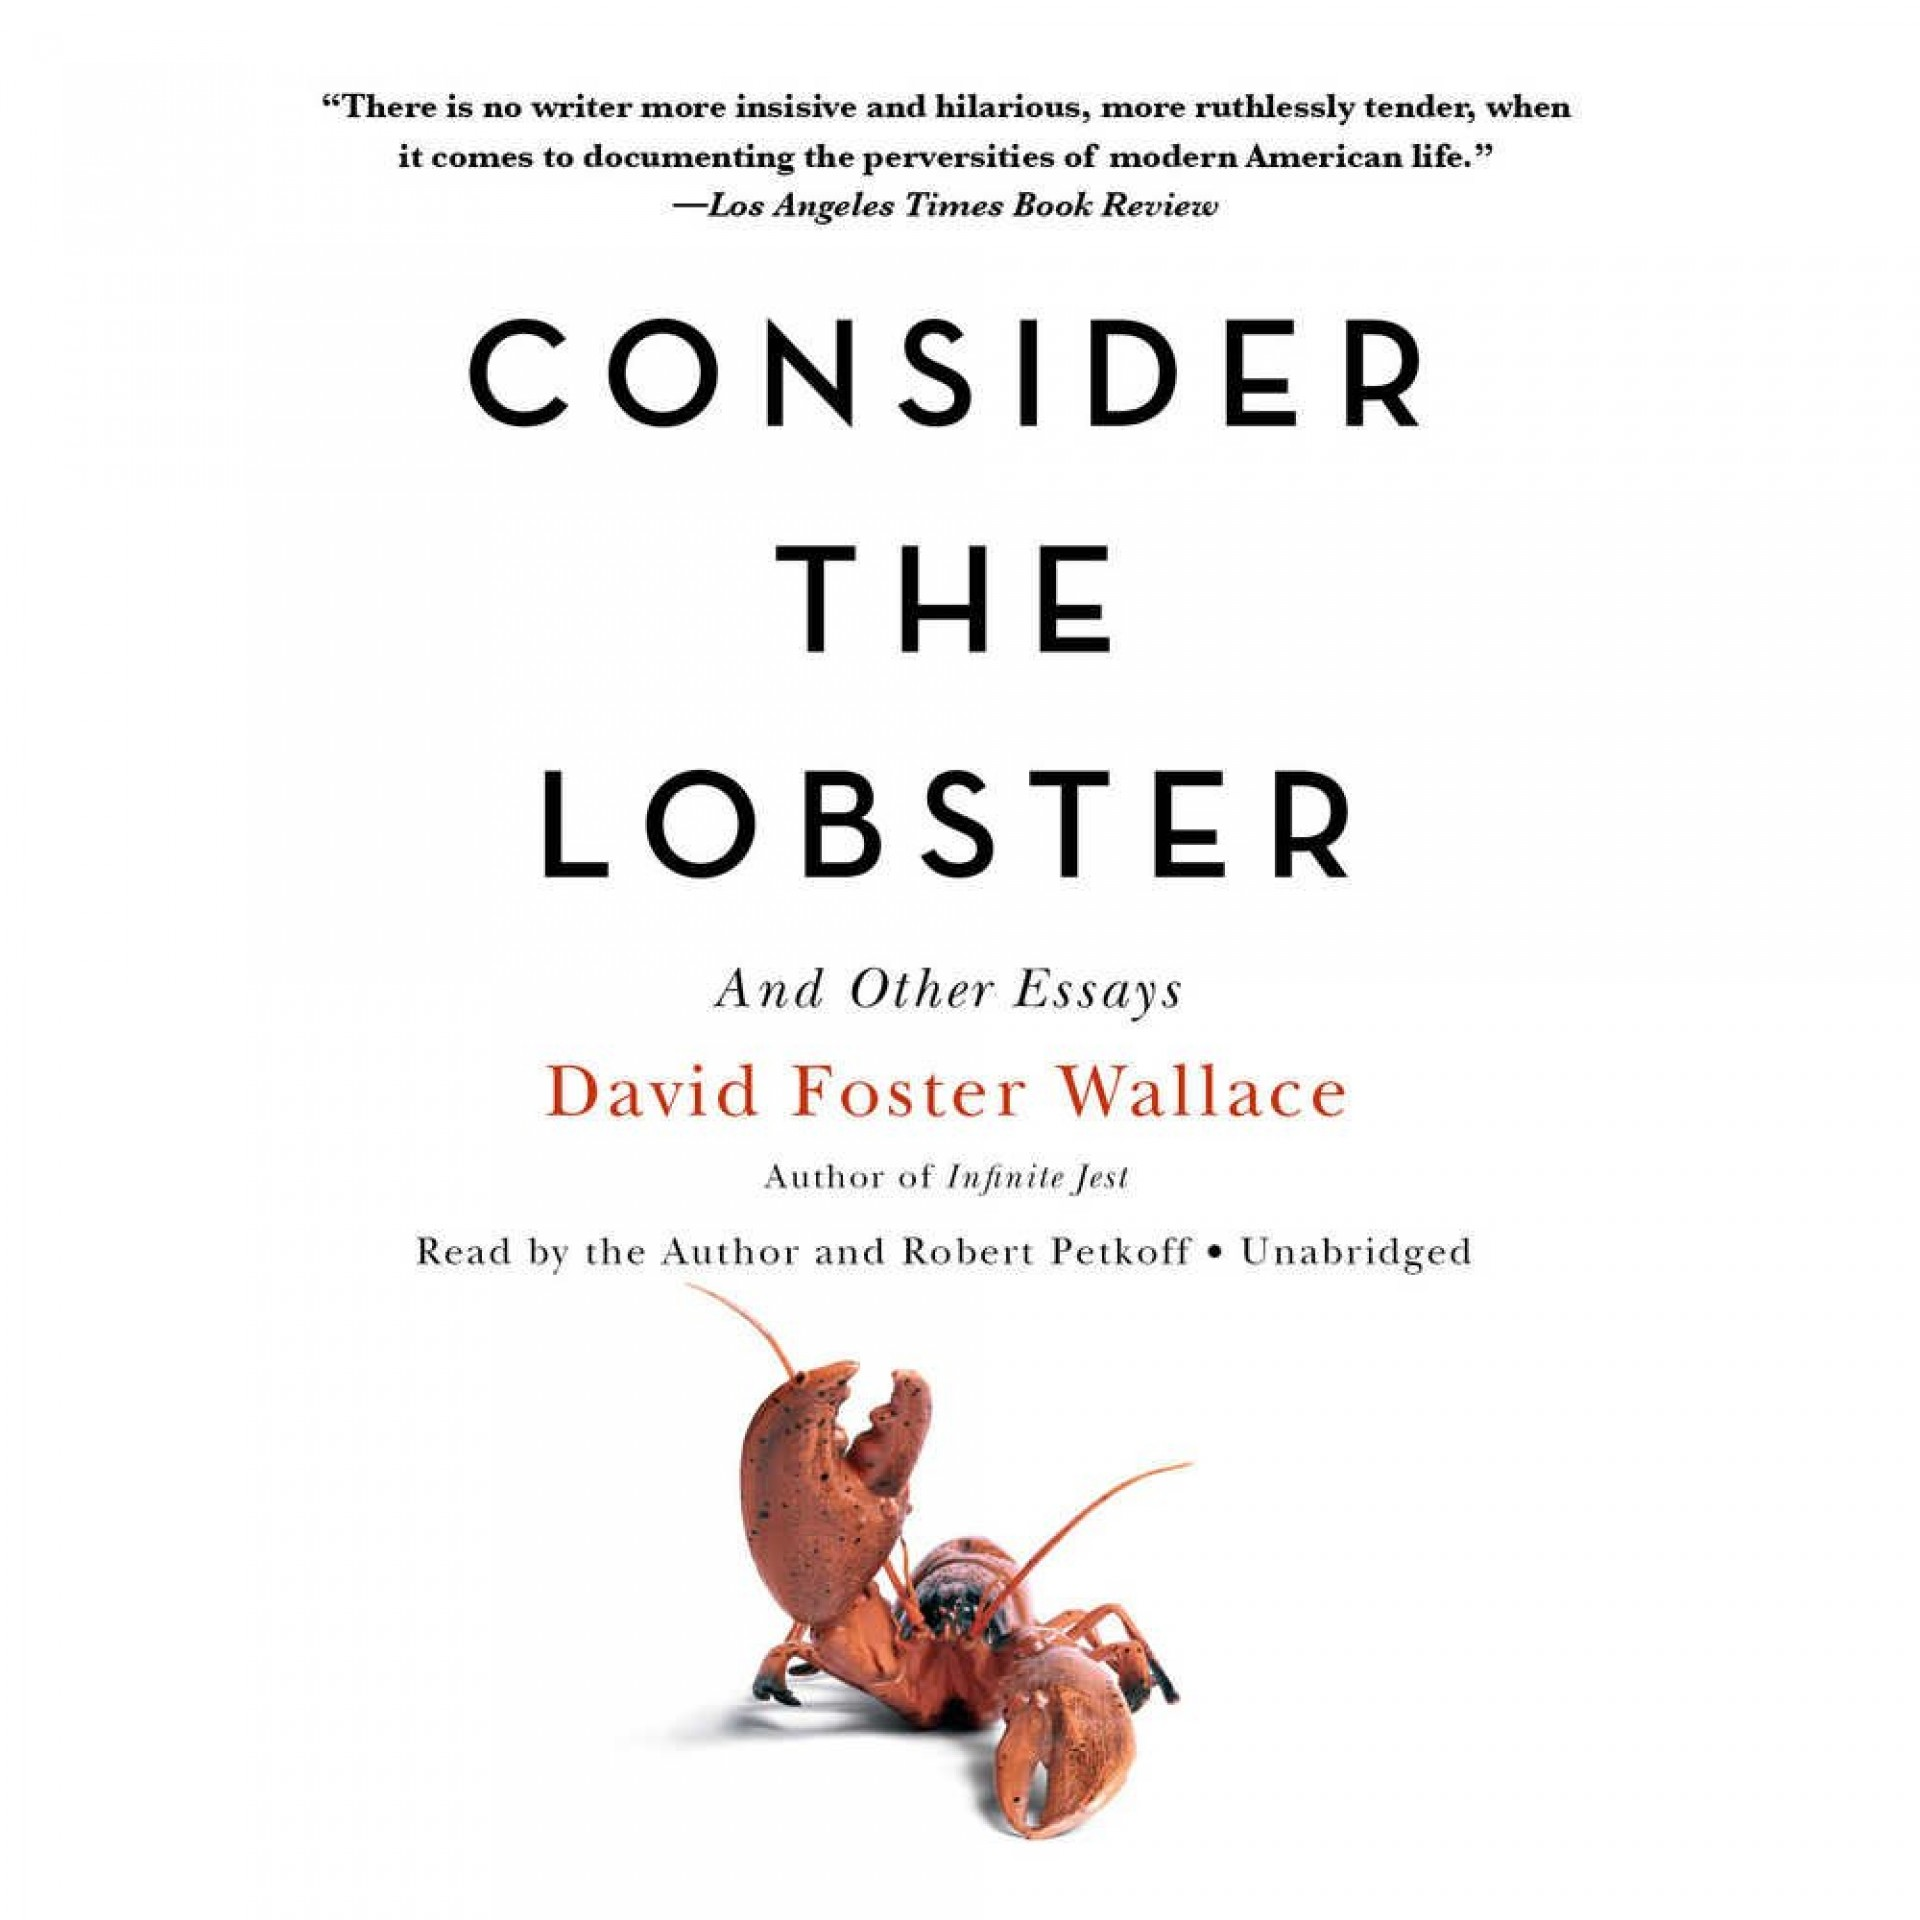 004 Essay Example 617nvtvarcl Consider The Exceptional Lobster Rhetorical Analysis Review 1920